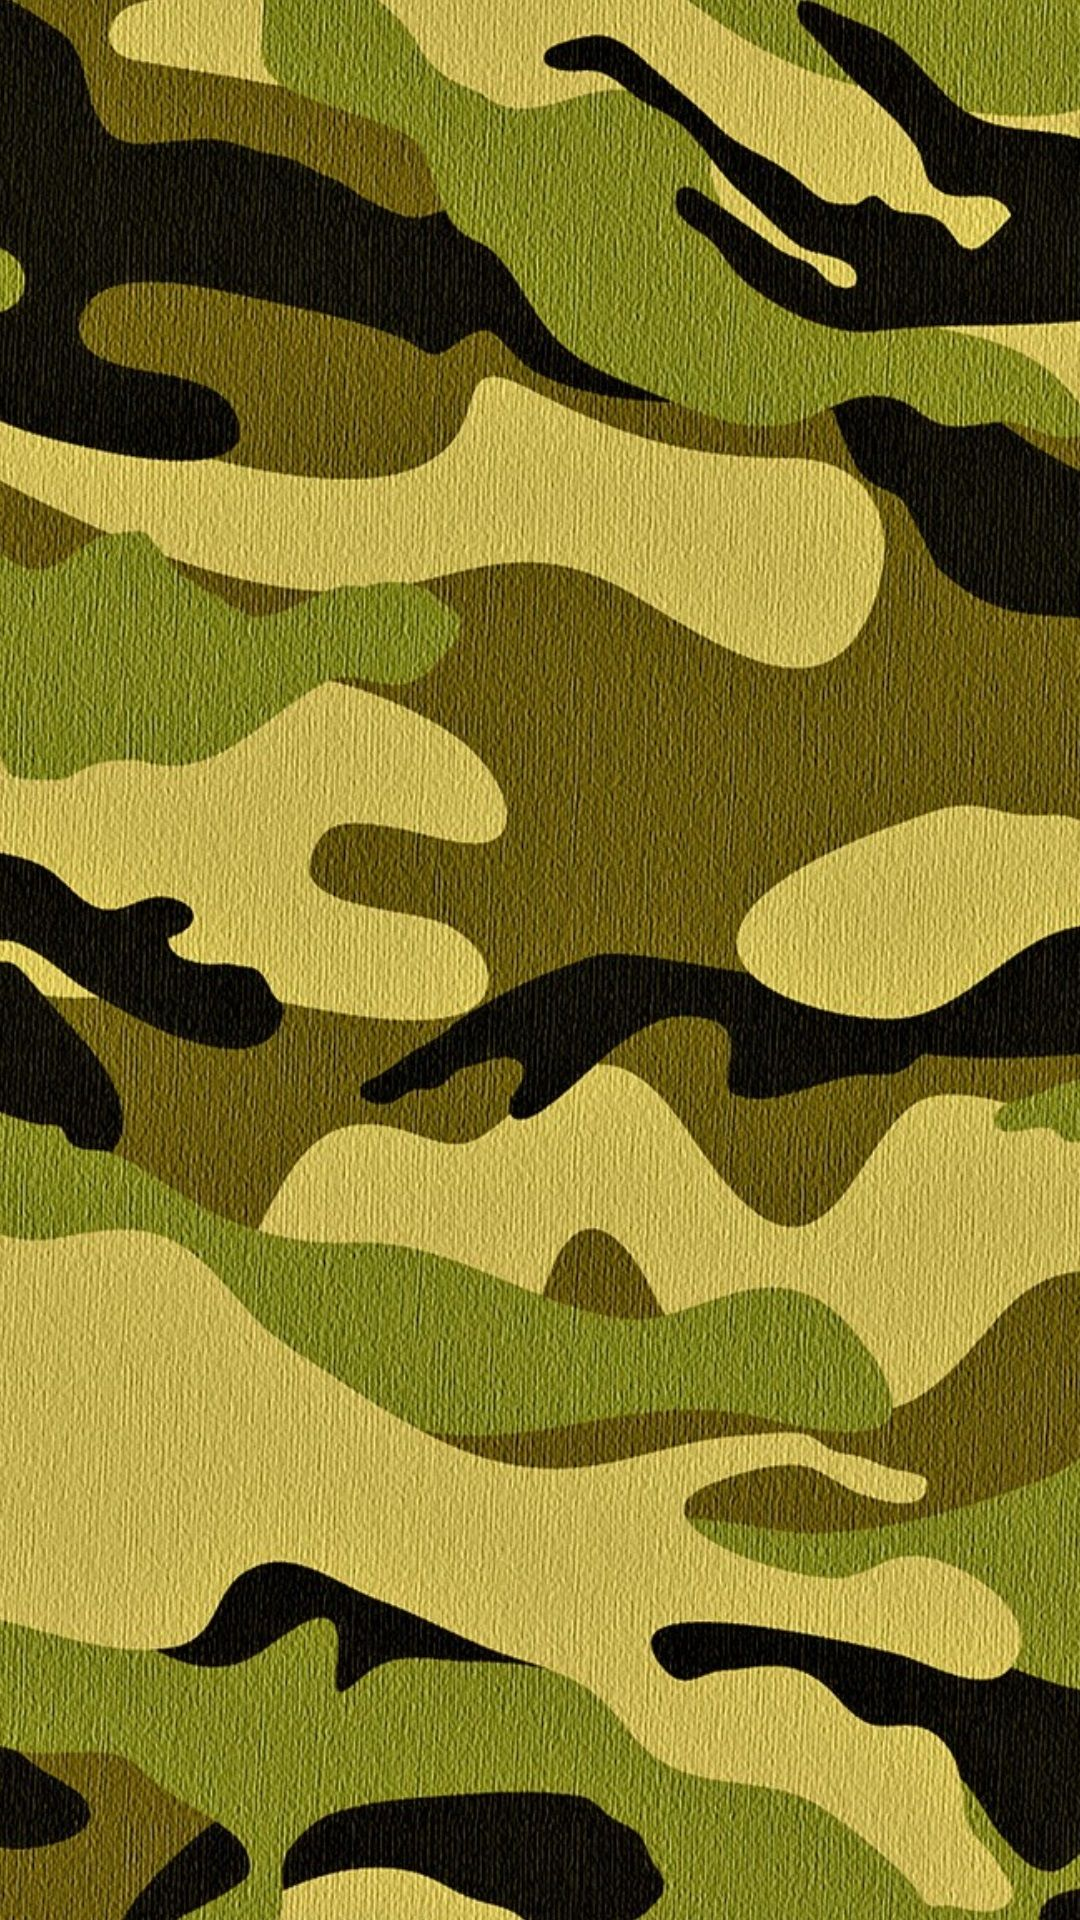 duck hunting camo backgrounds - photo #16